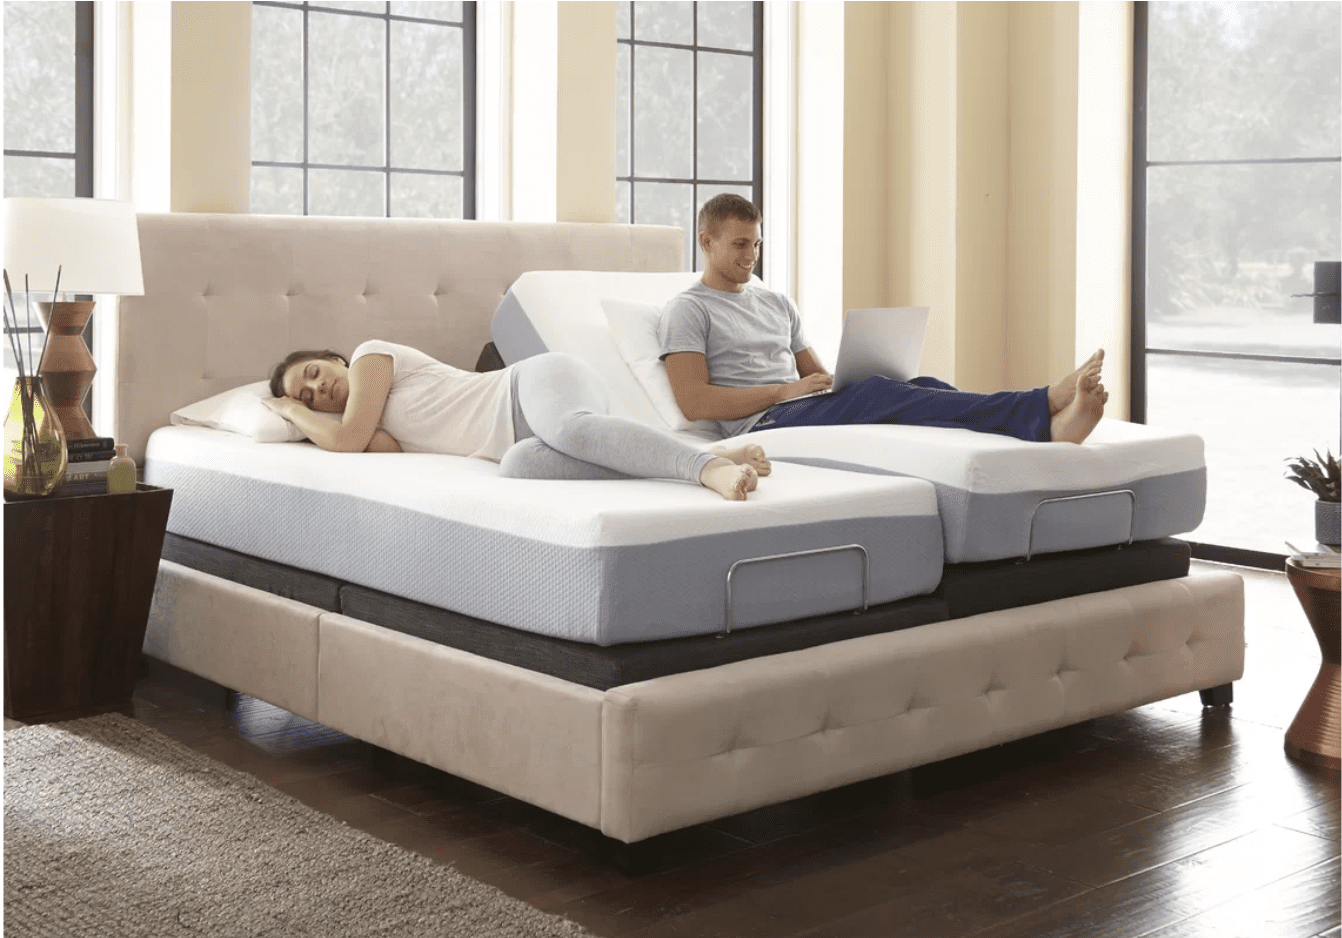 How to Find the Best Adjustable Mattress Bases